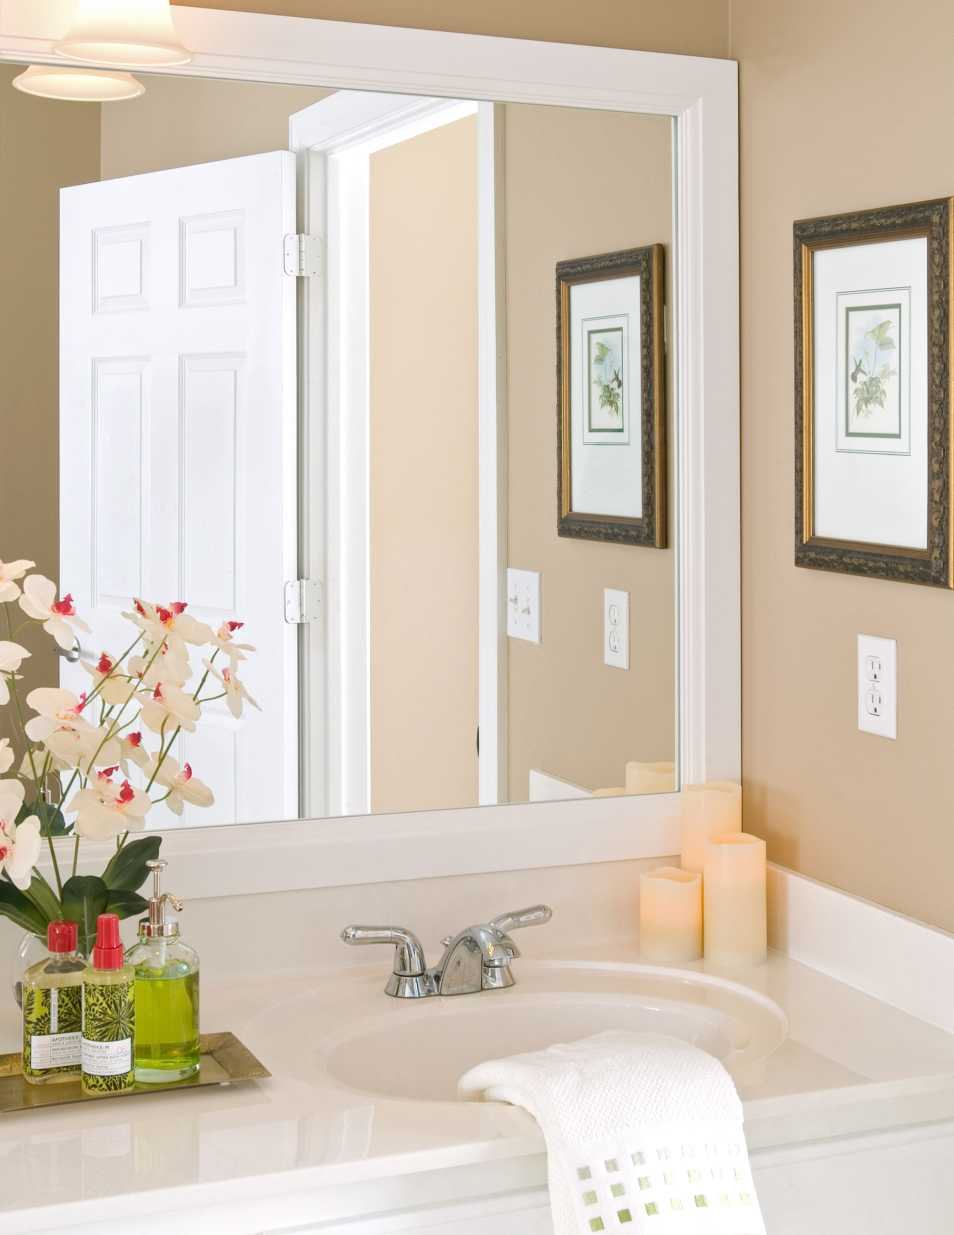 Durham Bathroom Mirror Frames